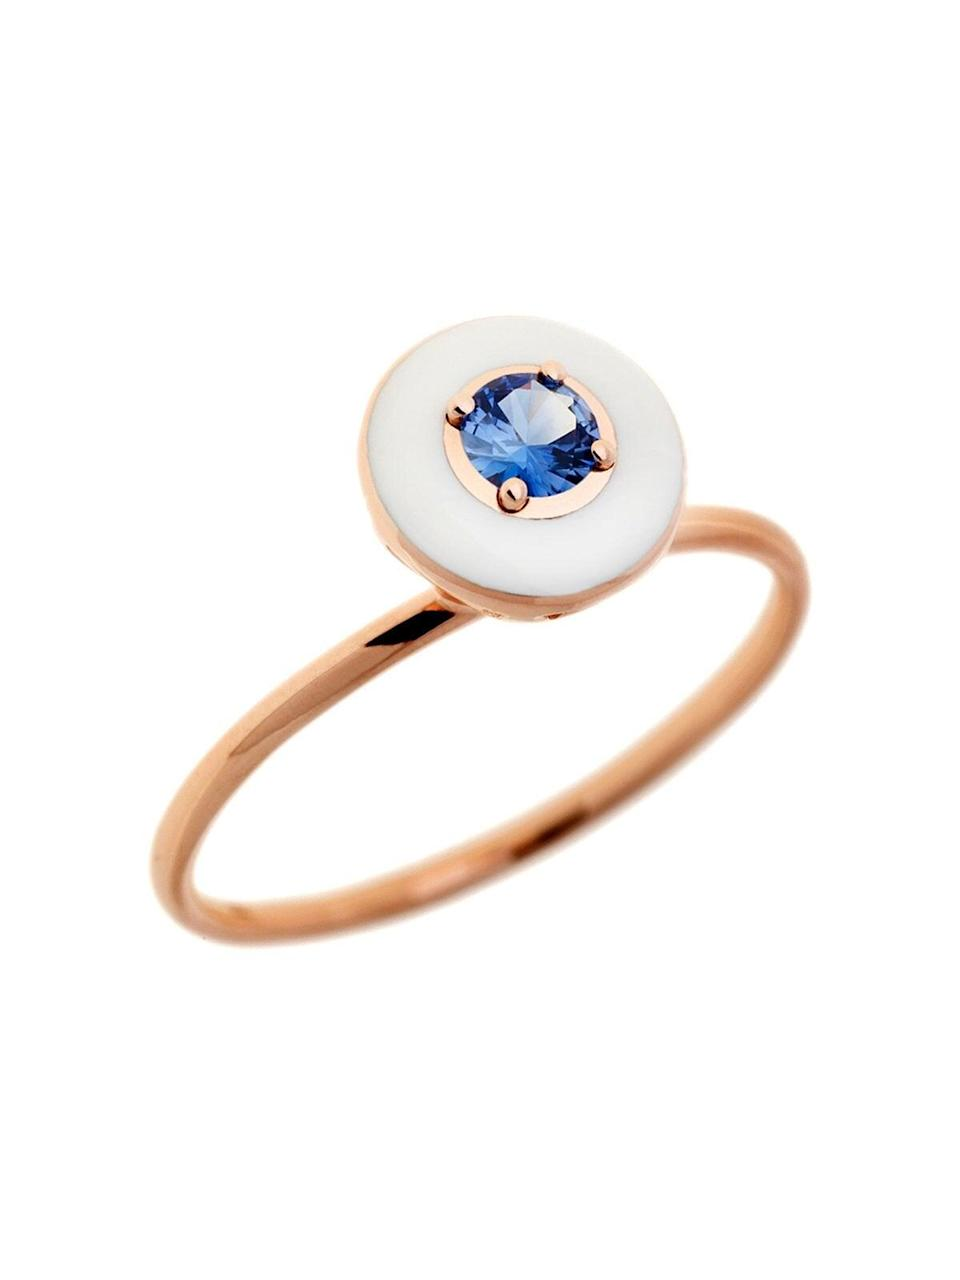 """<br><br><strong>Ylang23</strong> Blue Sapphire and Ivory Enamel Rose Gold Ring, $, available at <a href=""""https://go.skimresources.com/?id=30283X879131&url=https%3A%2F%2Fwww.ylang23.com%2Fproducts%2Fblue-sapphire-and-ivory-enamel-rose-gold-ring"""" rel=""""nofollow noopener"""" target=""""_blank"""" data-ylk=""""slk:Ylang23"""" class=""""link rapid-noclick-resp"""">Ylang23</a>"""